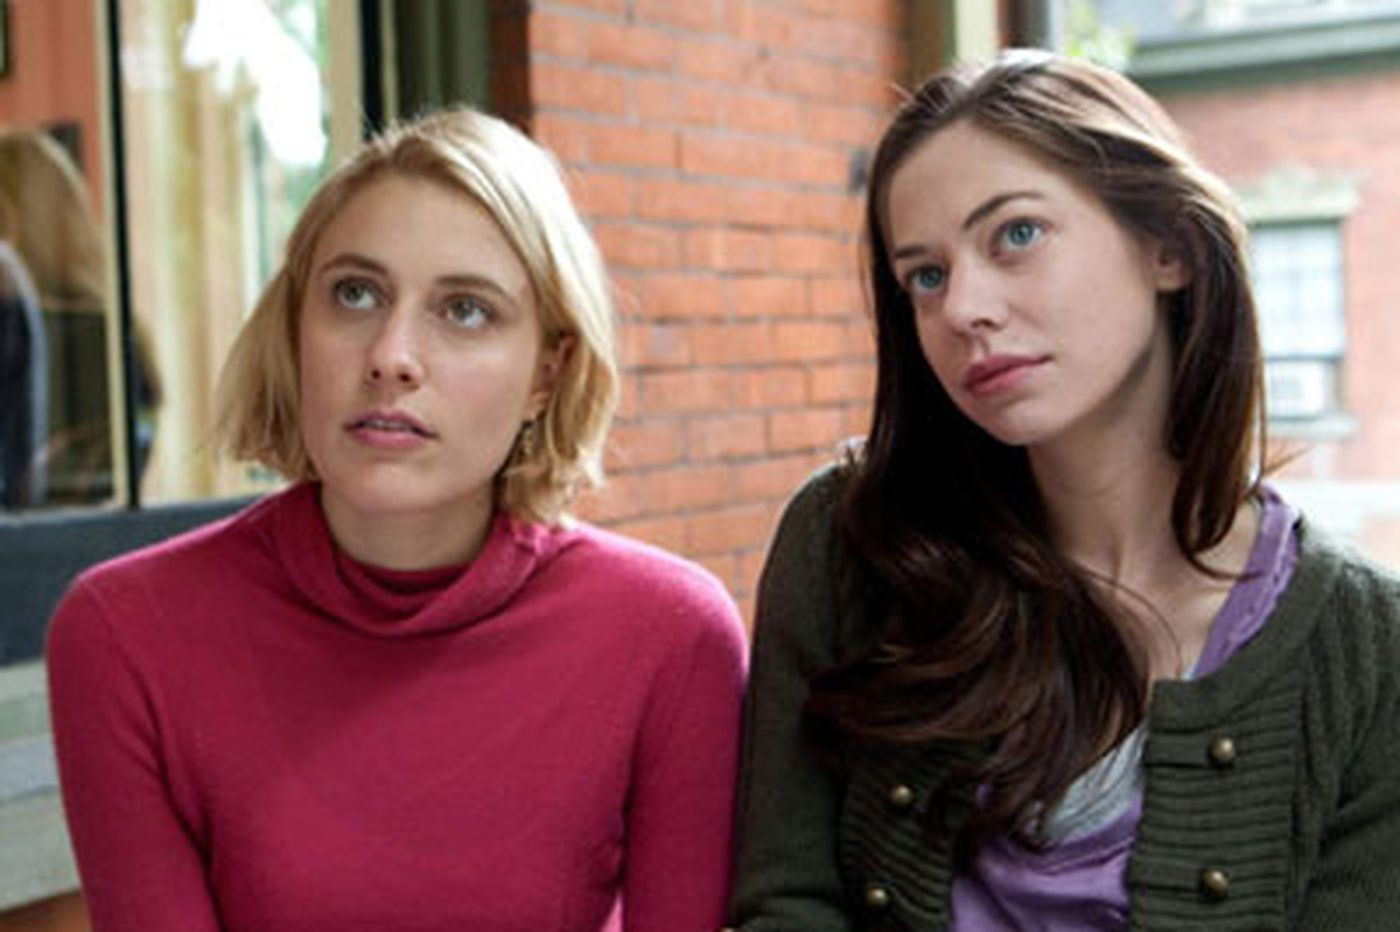 Gerwig sees 'Damsels in Distress' as relevant comment on campus life